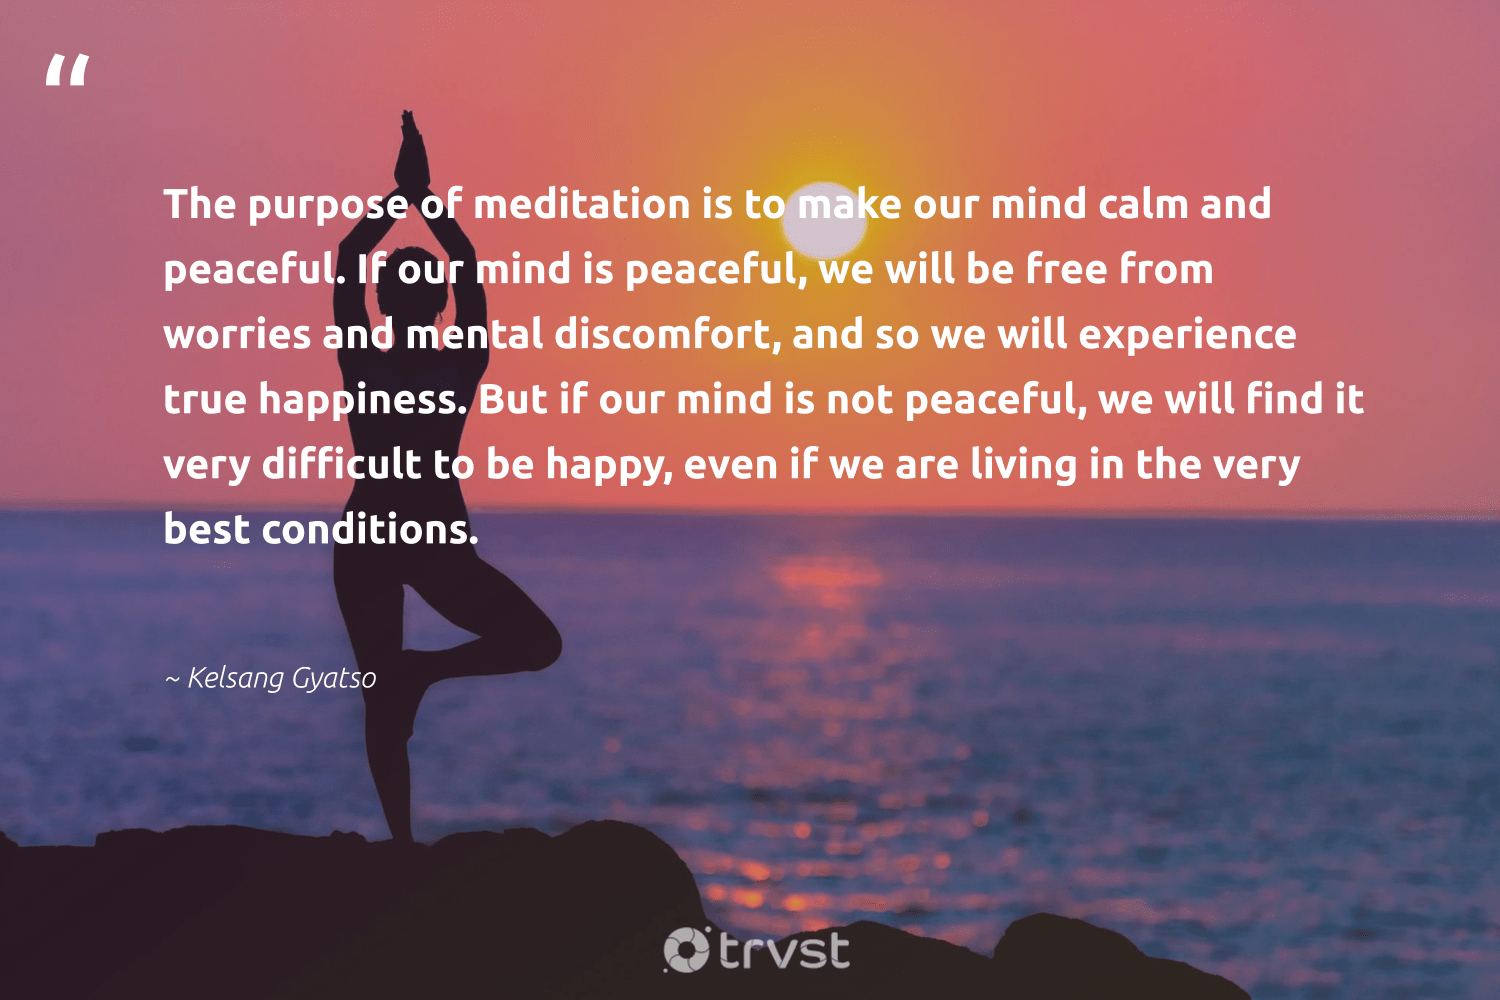 """""""The purpose of meditation is to make our mind calm and peaceful. If our mind is peaceful, we will be free from worries and mental discomfort, and so we will experience true happiness. But if our mind is not peaceful, we will find it very difficult to be happy, even if we are living in the very best conditions.""""  - Kelsang Gyatso #trvst #quotes #mindset #happy #happiness #meditation #purpose #meditate #nevergiveup #changemakers #socialchange #creativemindset"""